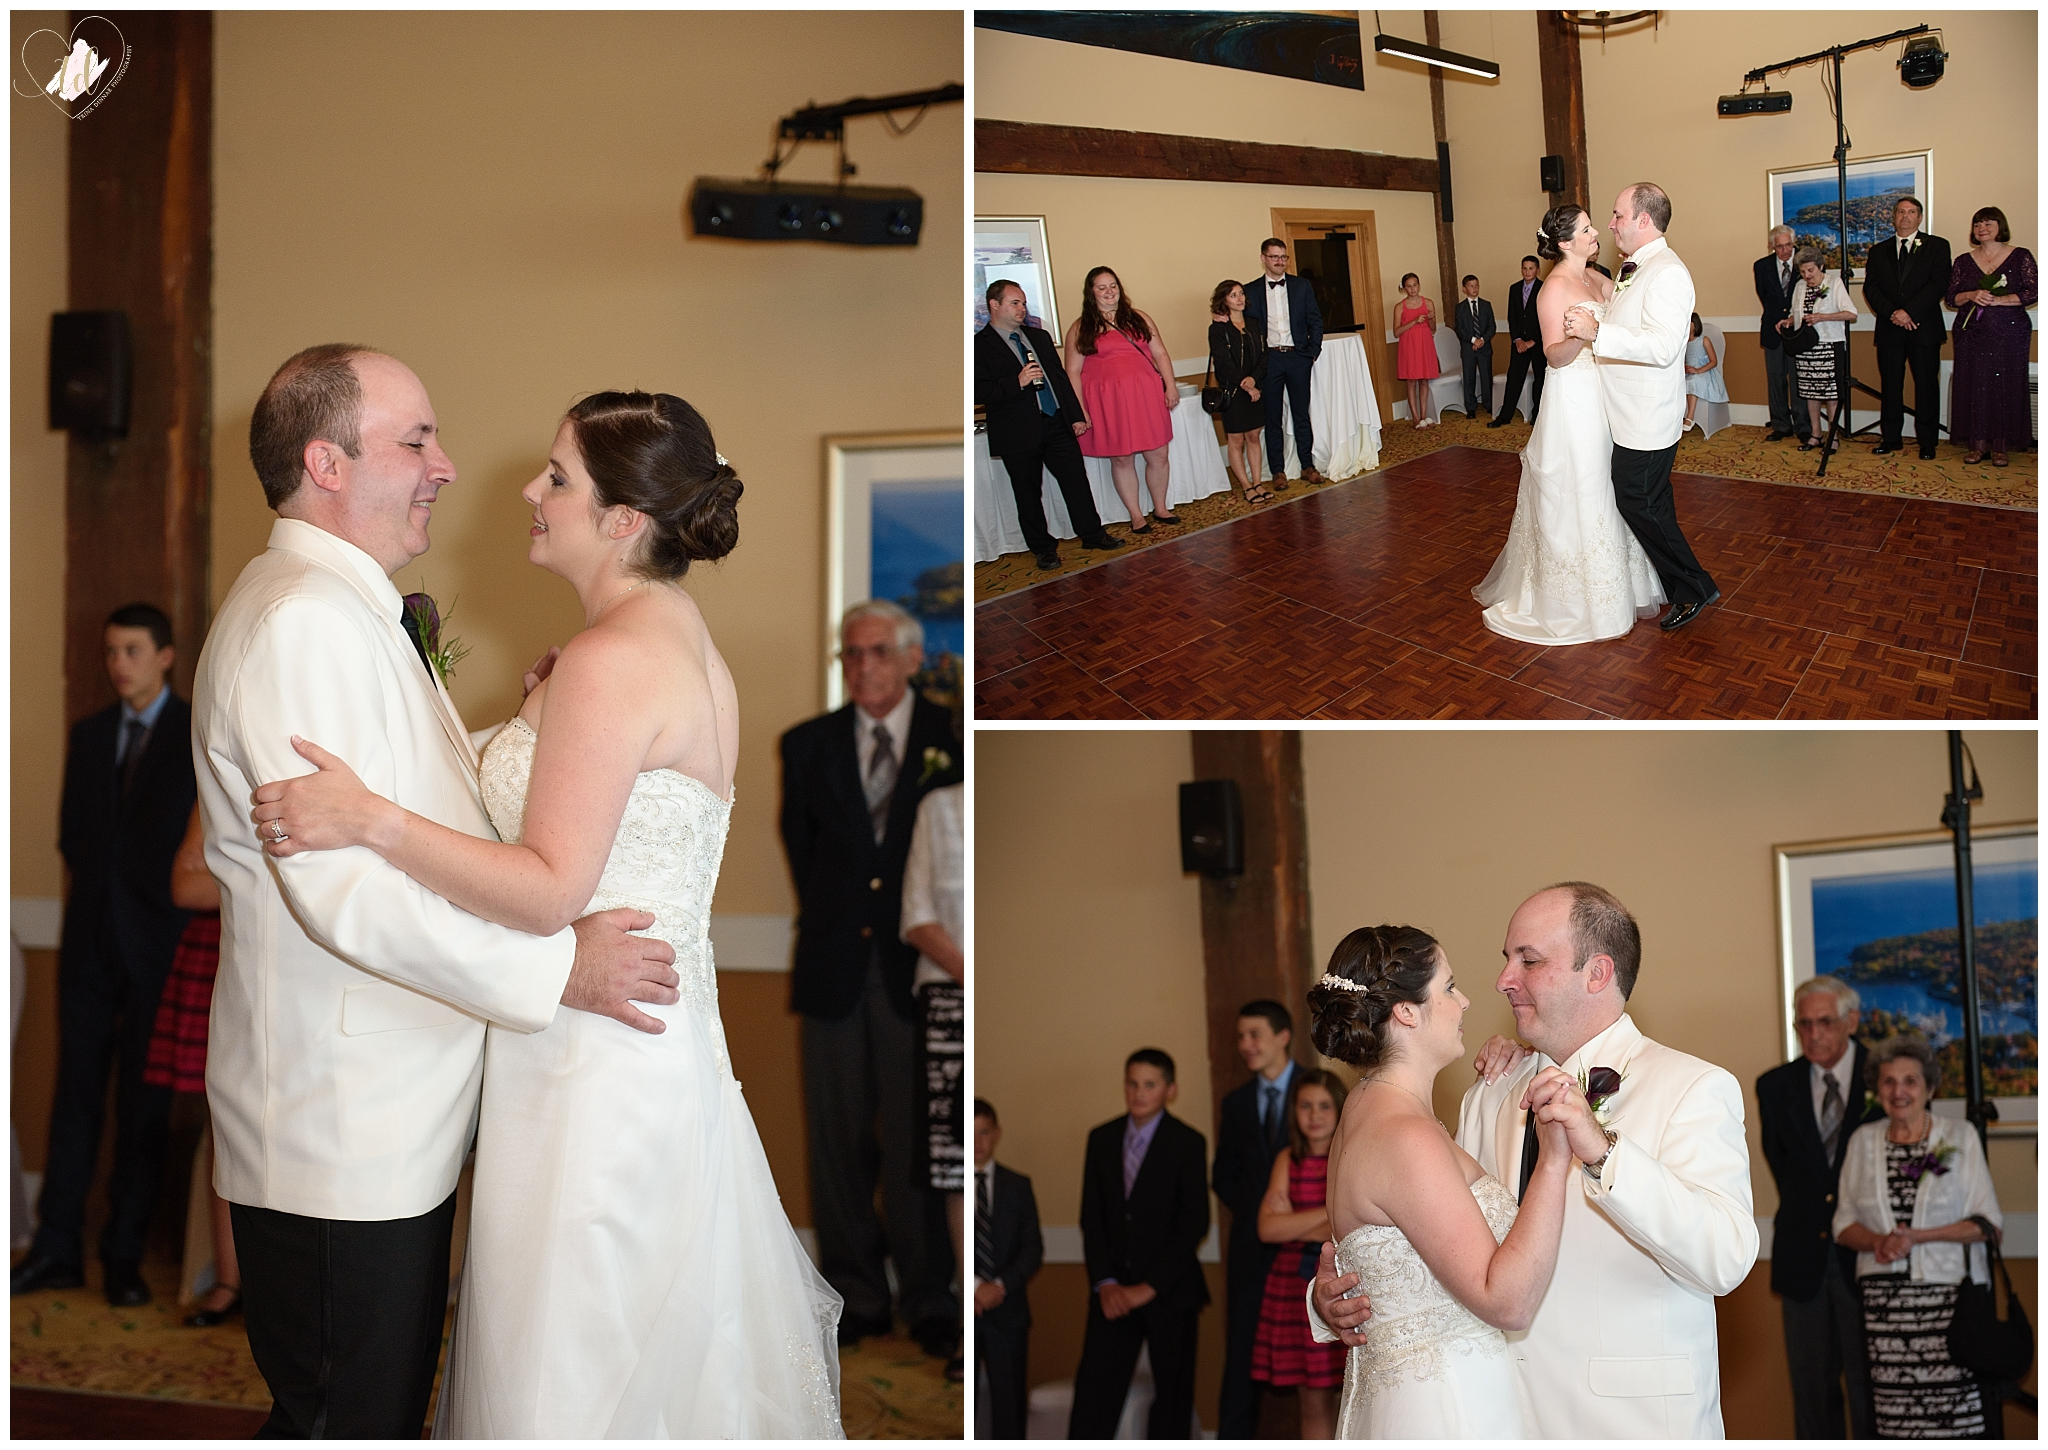 The bride and groom share their first dance at their Rockport Maine wedding.